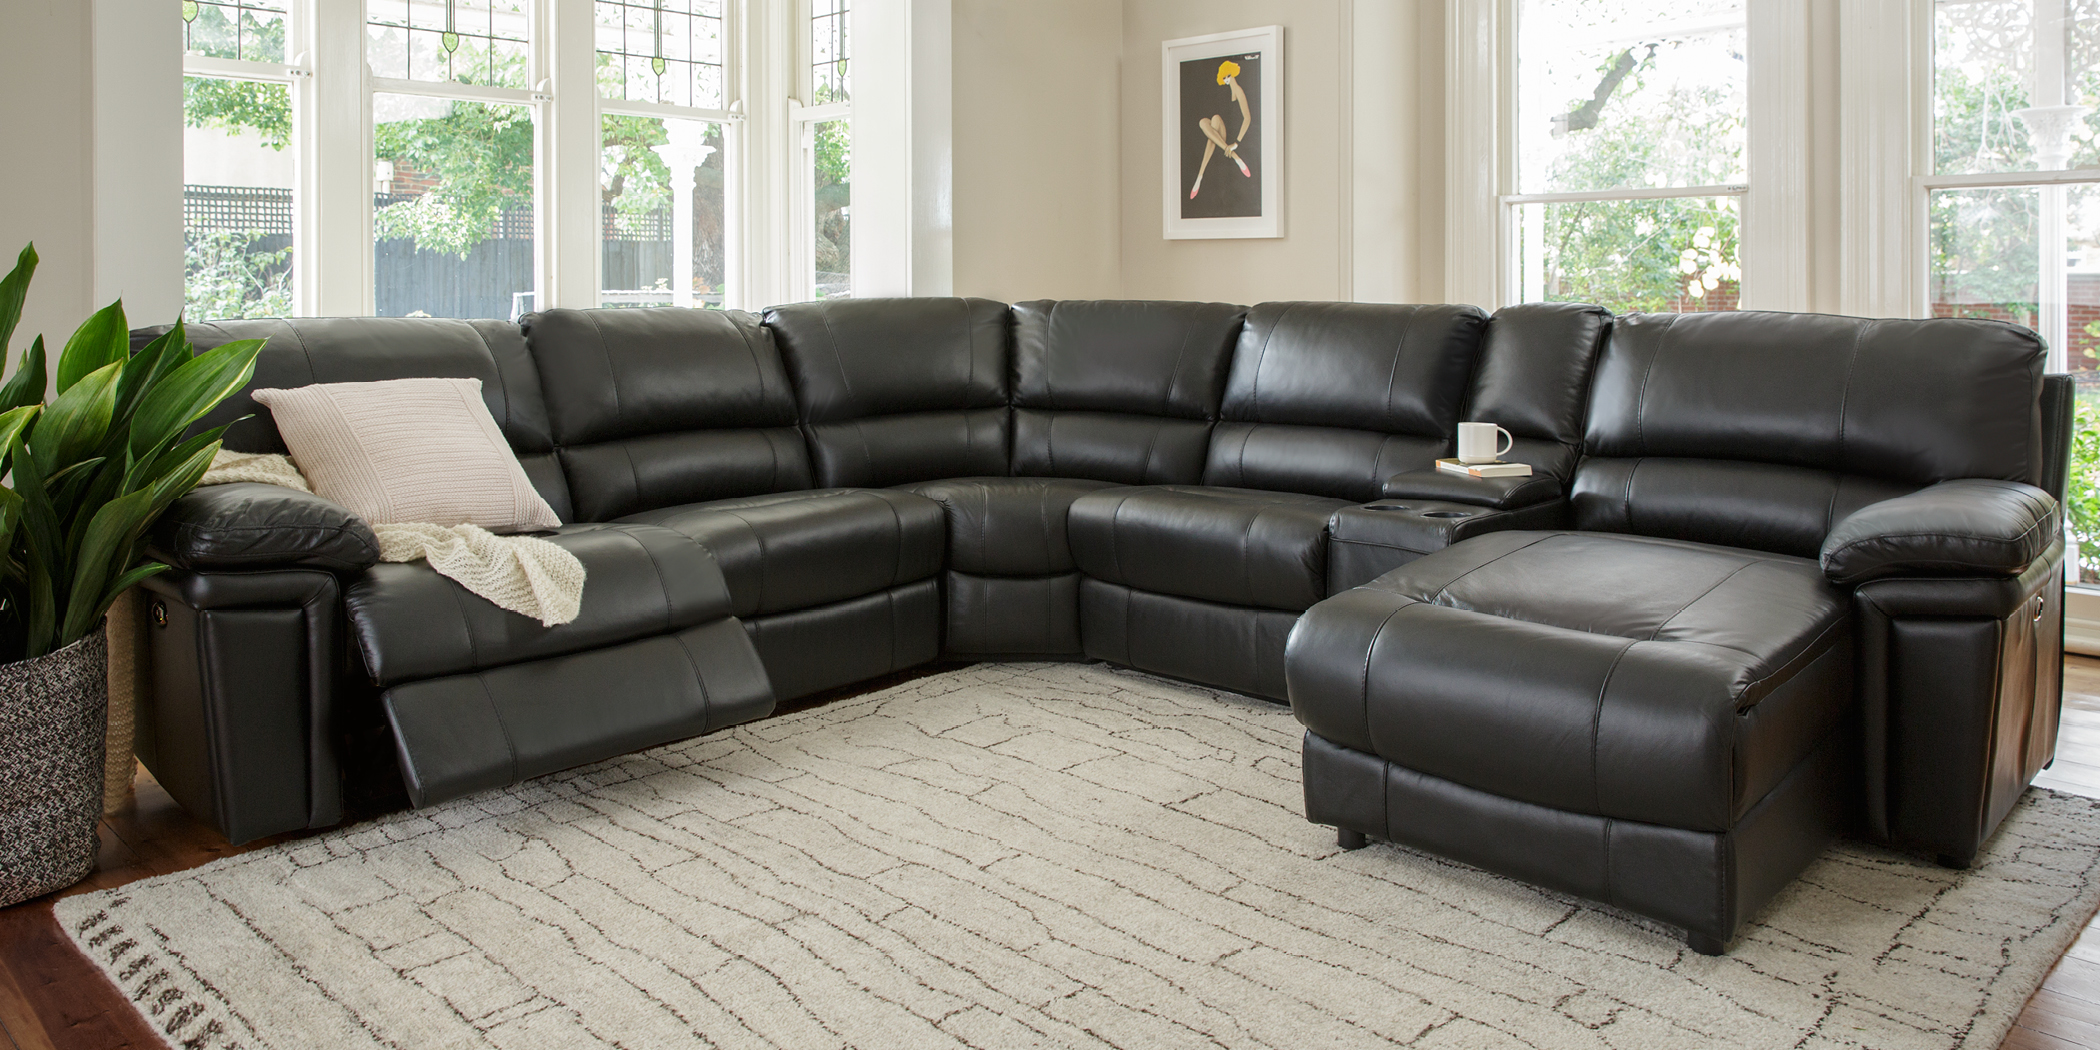 Emmerson Leather Recliner Lounges